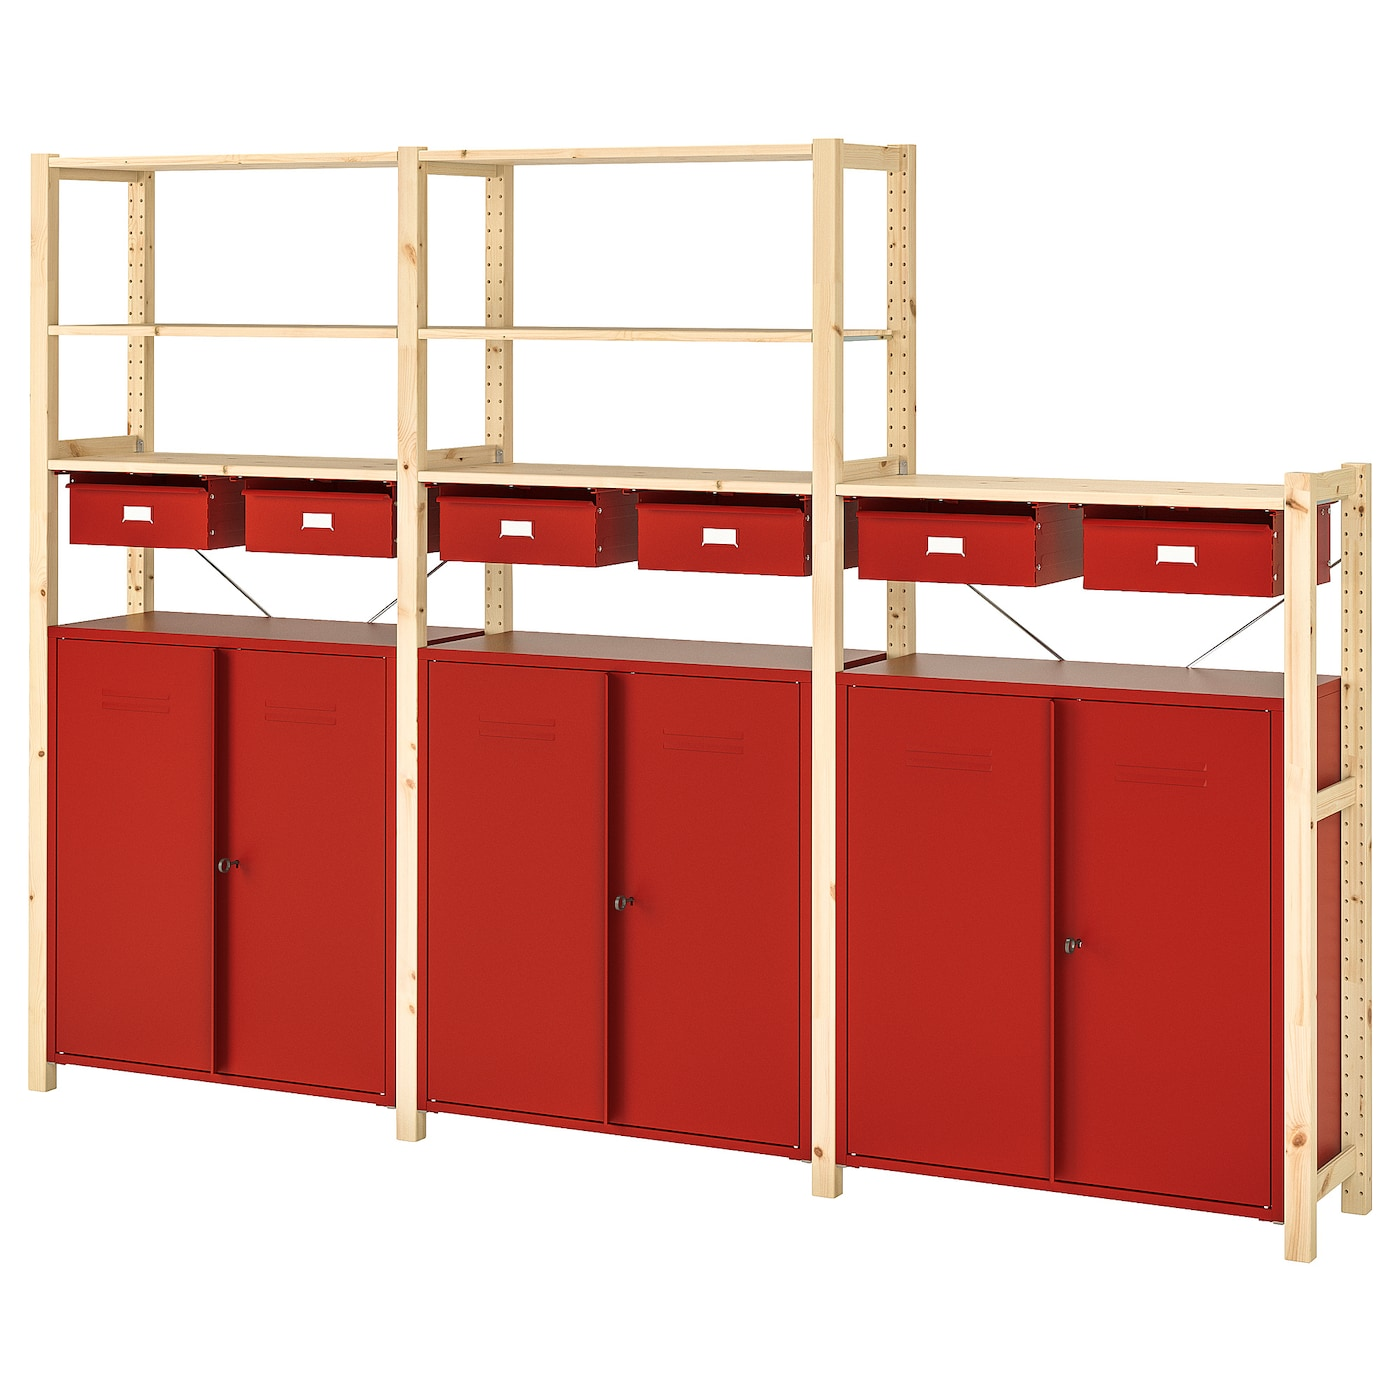 Shelving Unit W Cabinets Drawers Ivar Pine Red